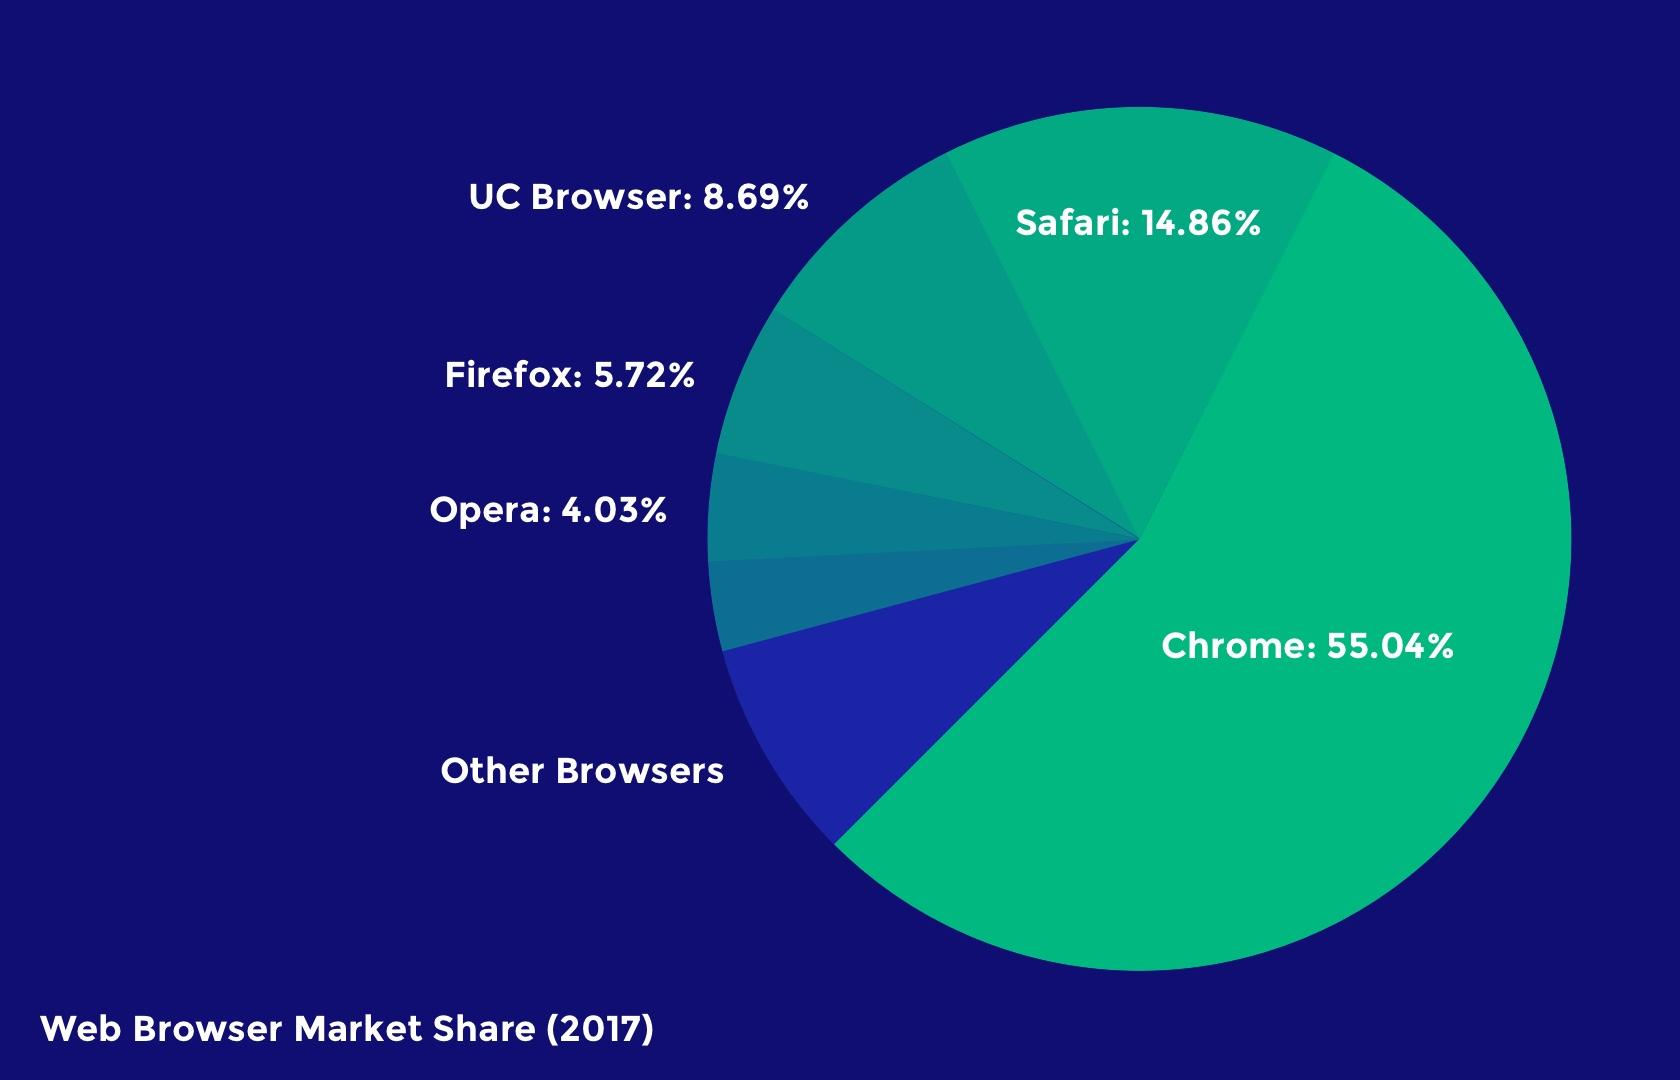 Statistical breakdown of web browser usage in 2017